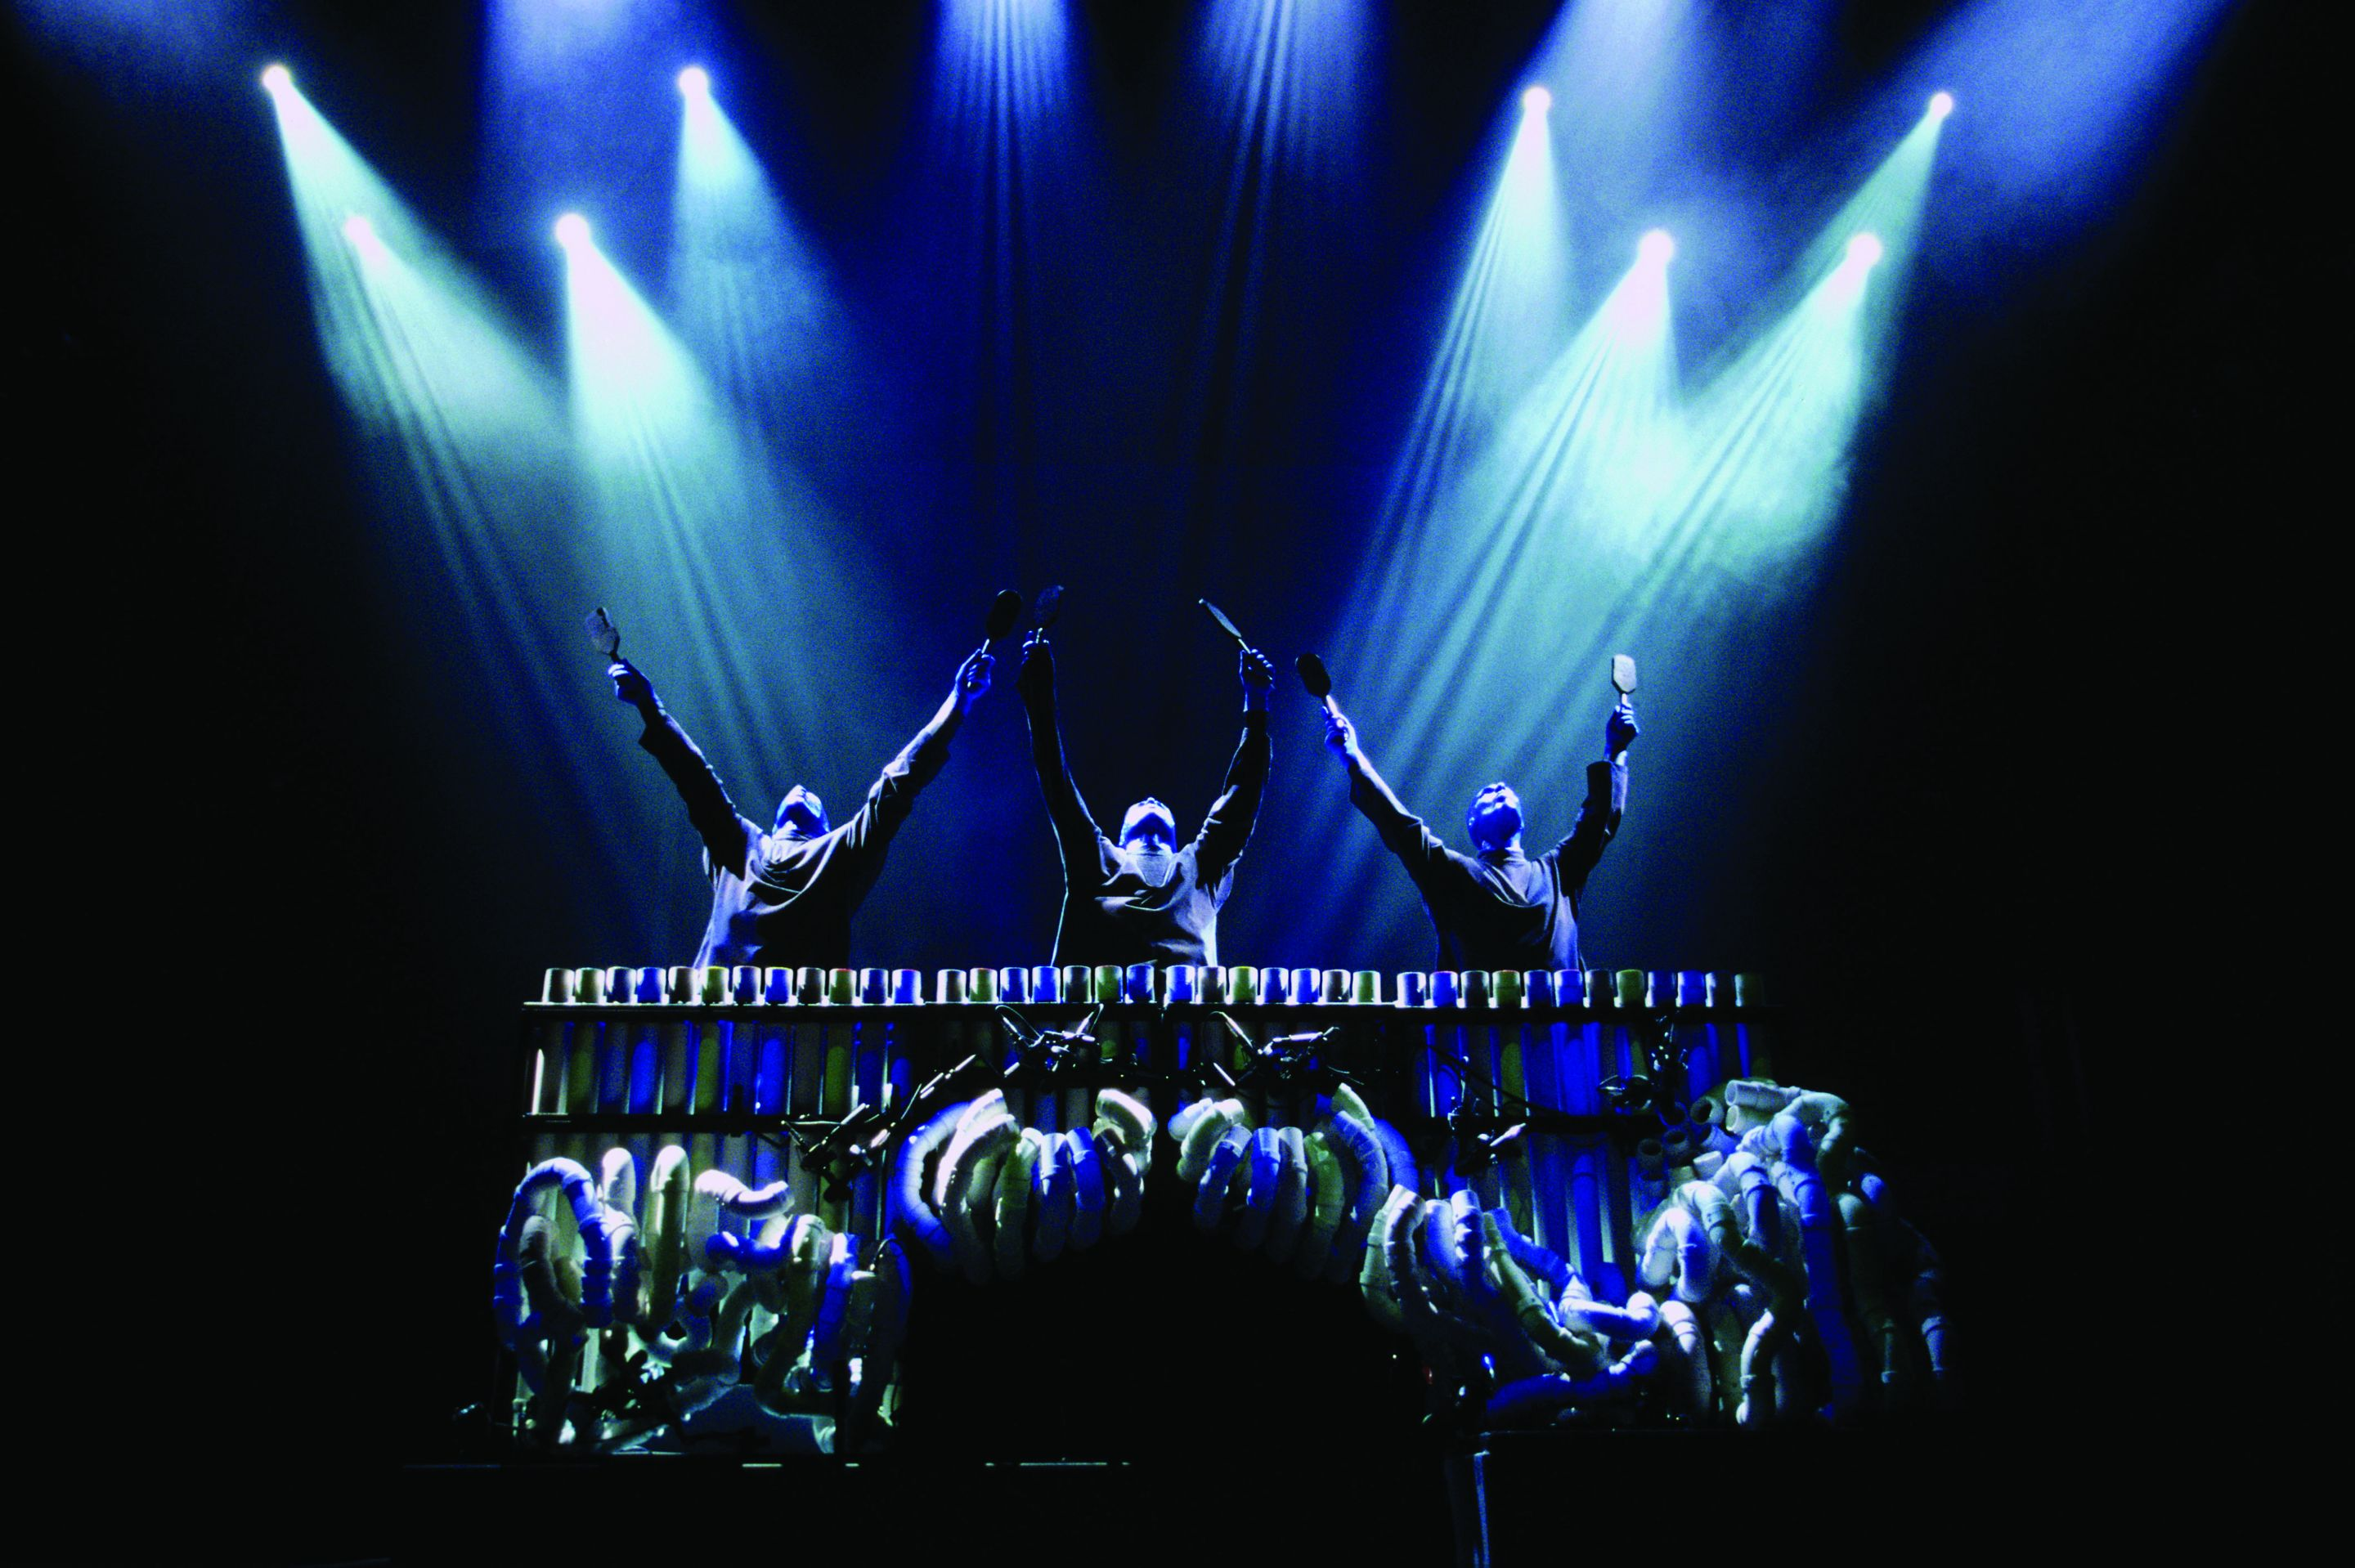 The current blue man group